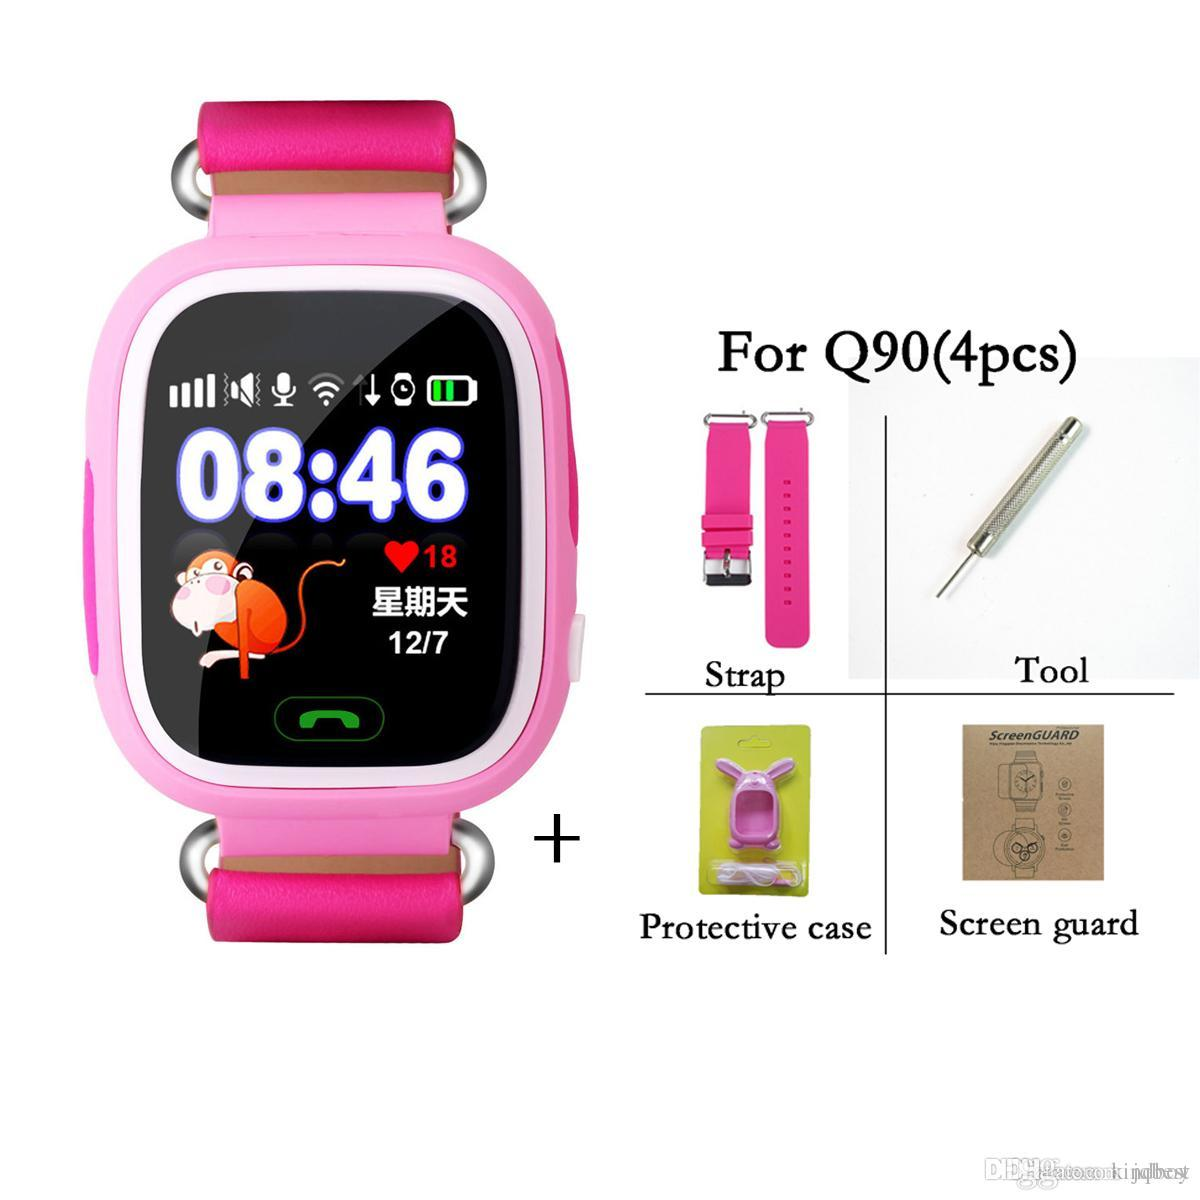 Q90 bluetooth smartwatch com lg wifi lbs para iphone ios android telefone inteligente wear relógio dispositivo wearable smart watch 3 cores dhl grátis